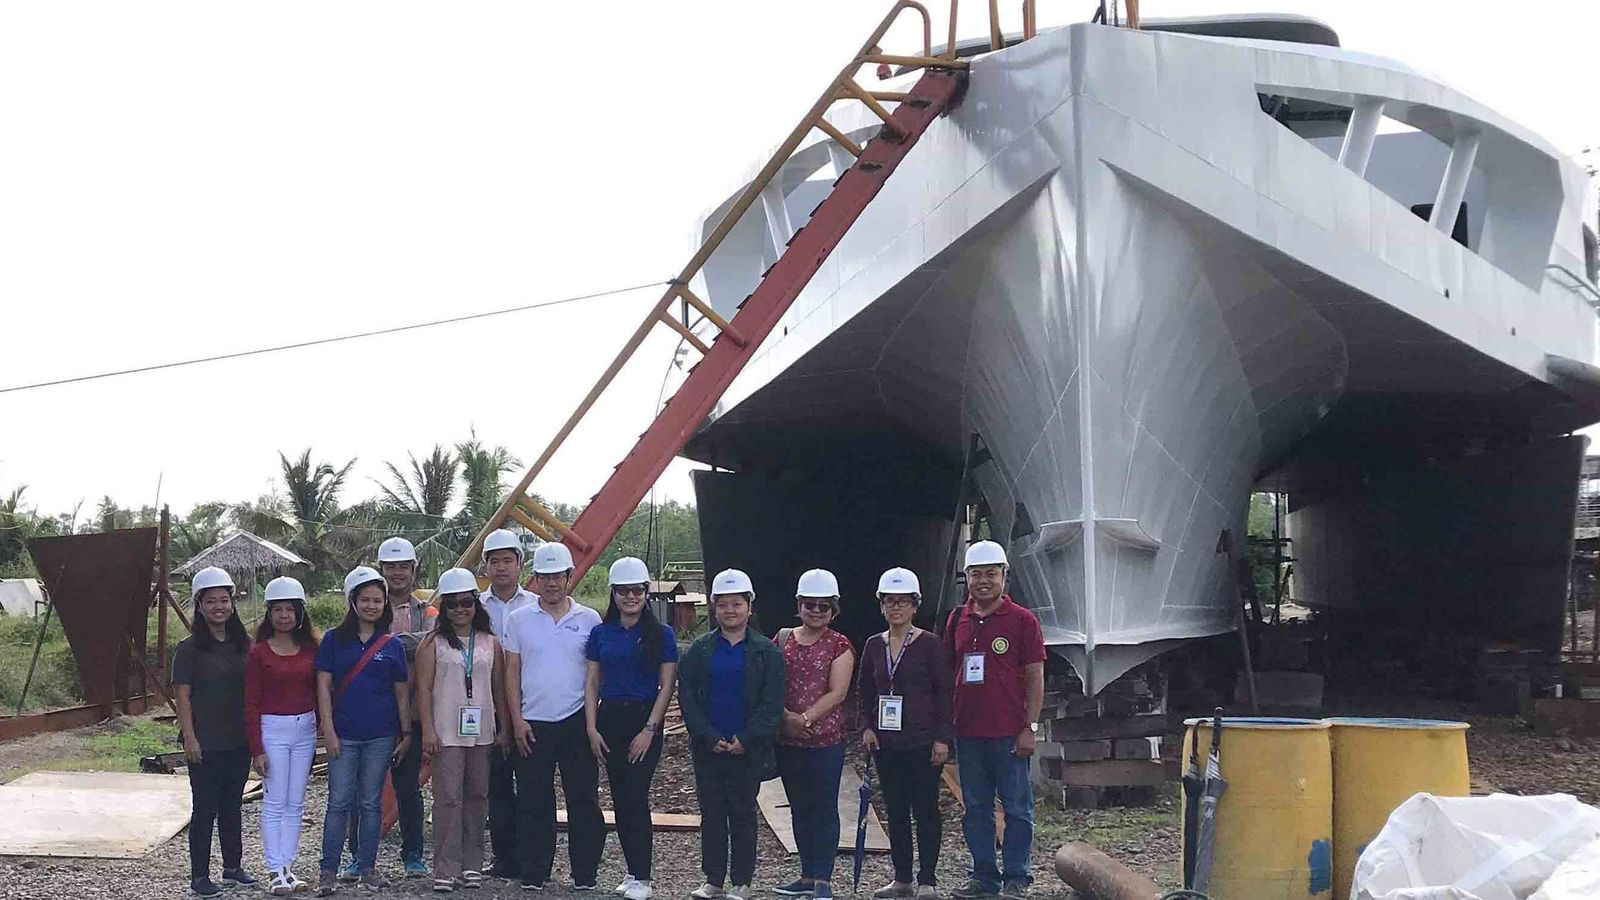 The prototype wave-powered boat is hoped to be the first in a series of increasingly ambitious designs moving away from fossil fuels (Credit: PCIEERD/Aklan State University)